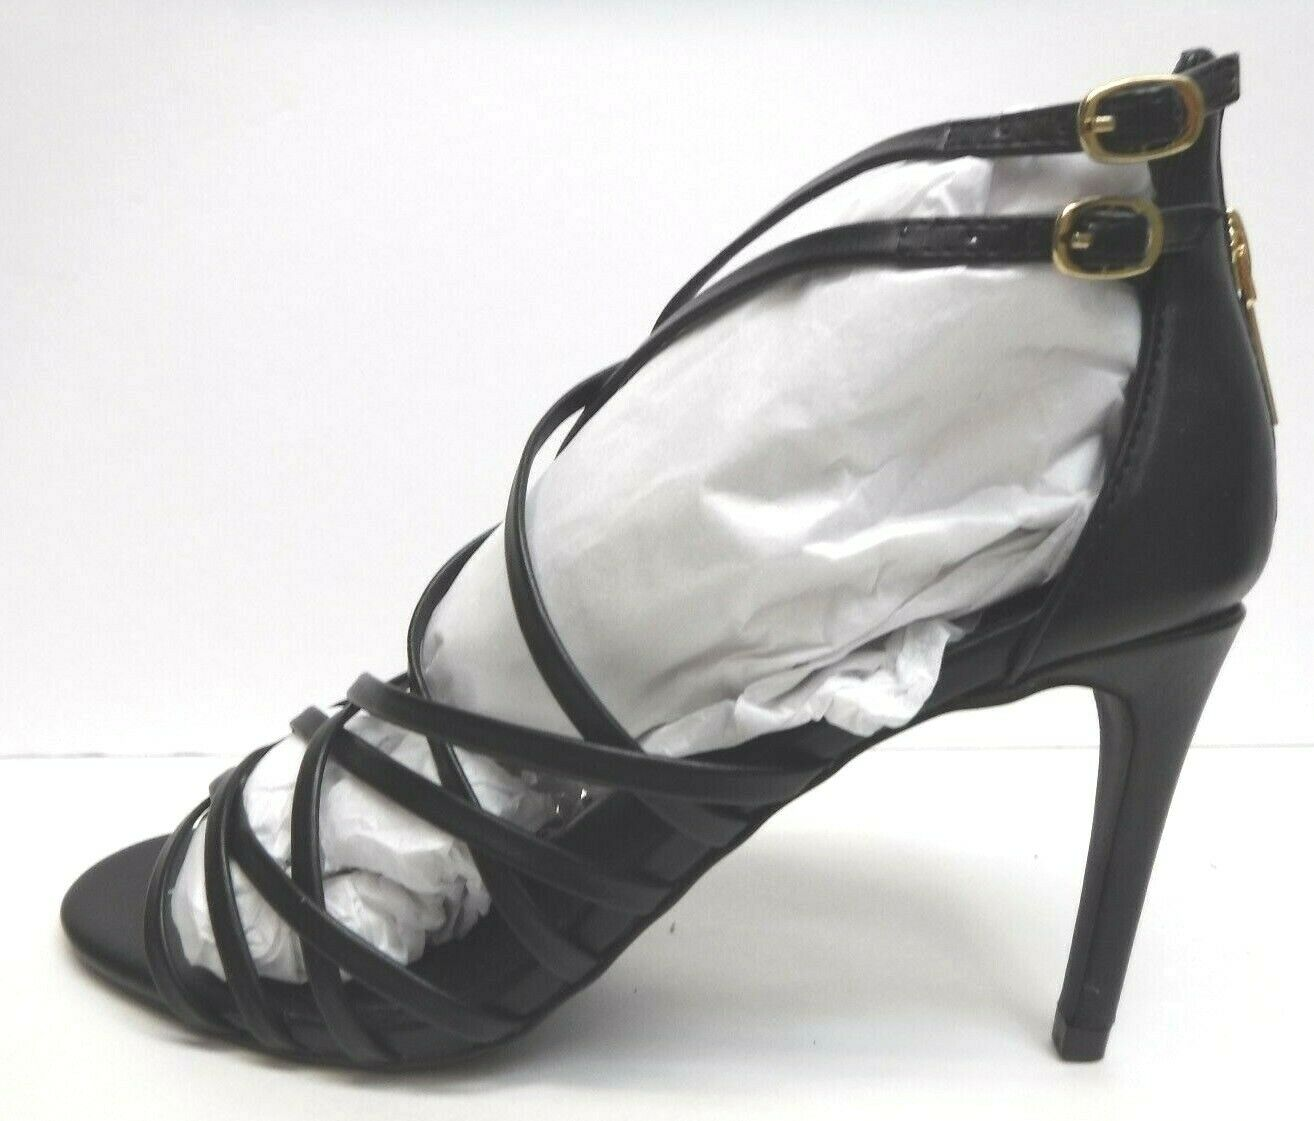 Steve Madden Size 8 Black Strappy Sandals Heels New Womens Shoes